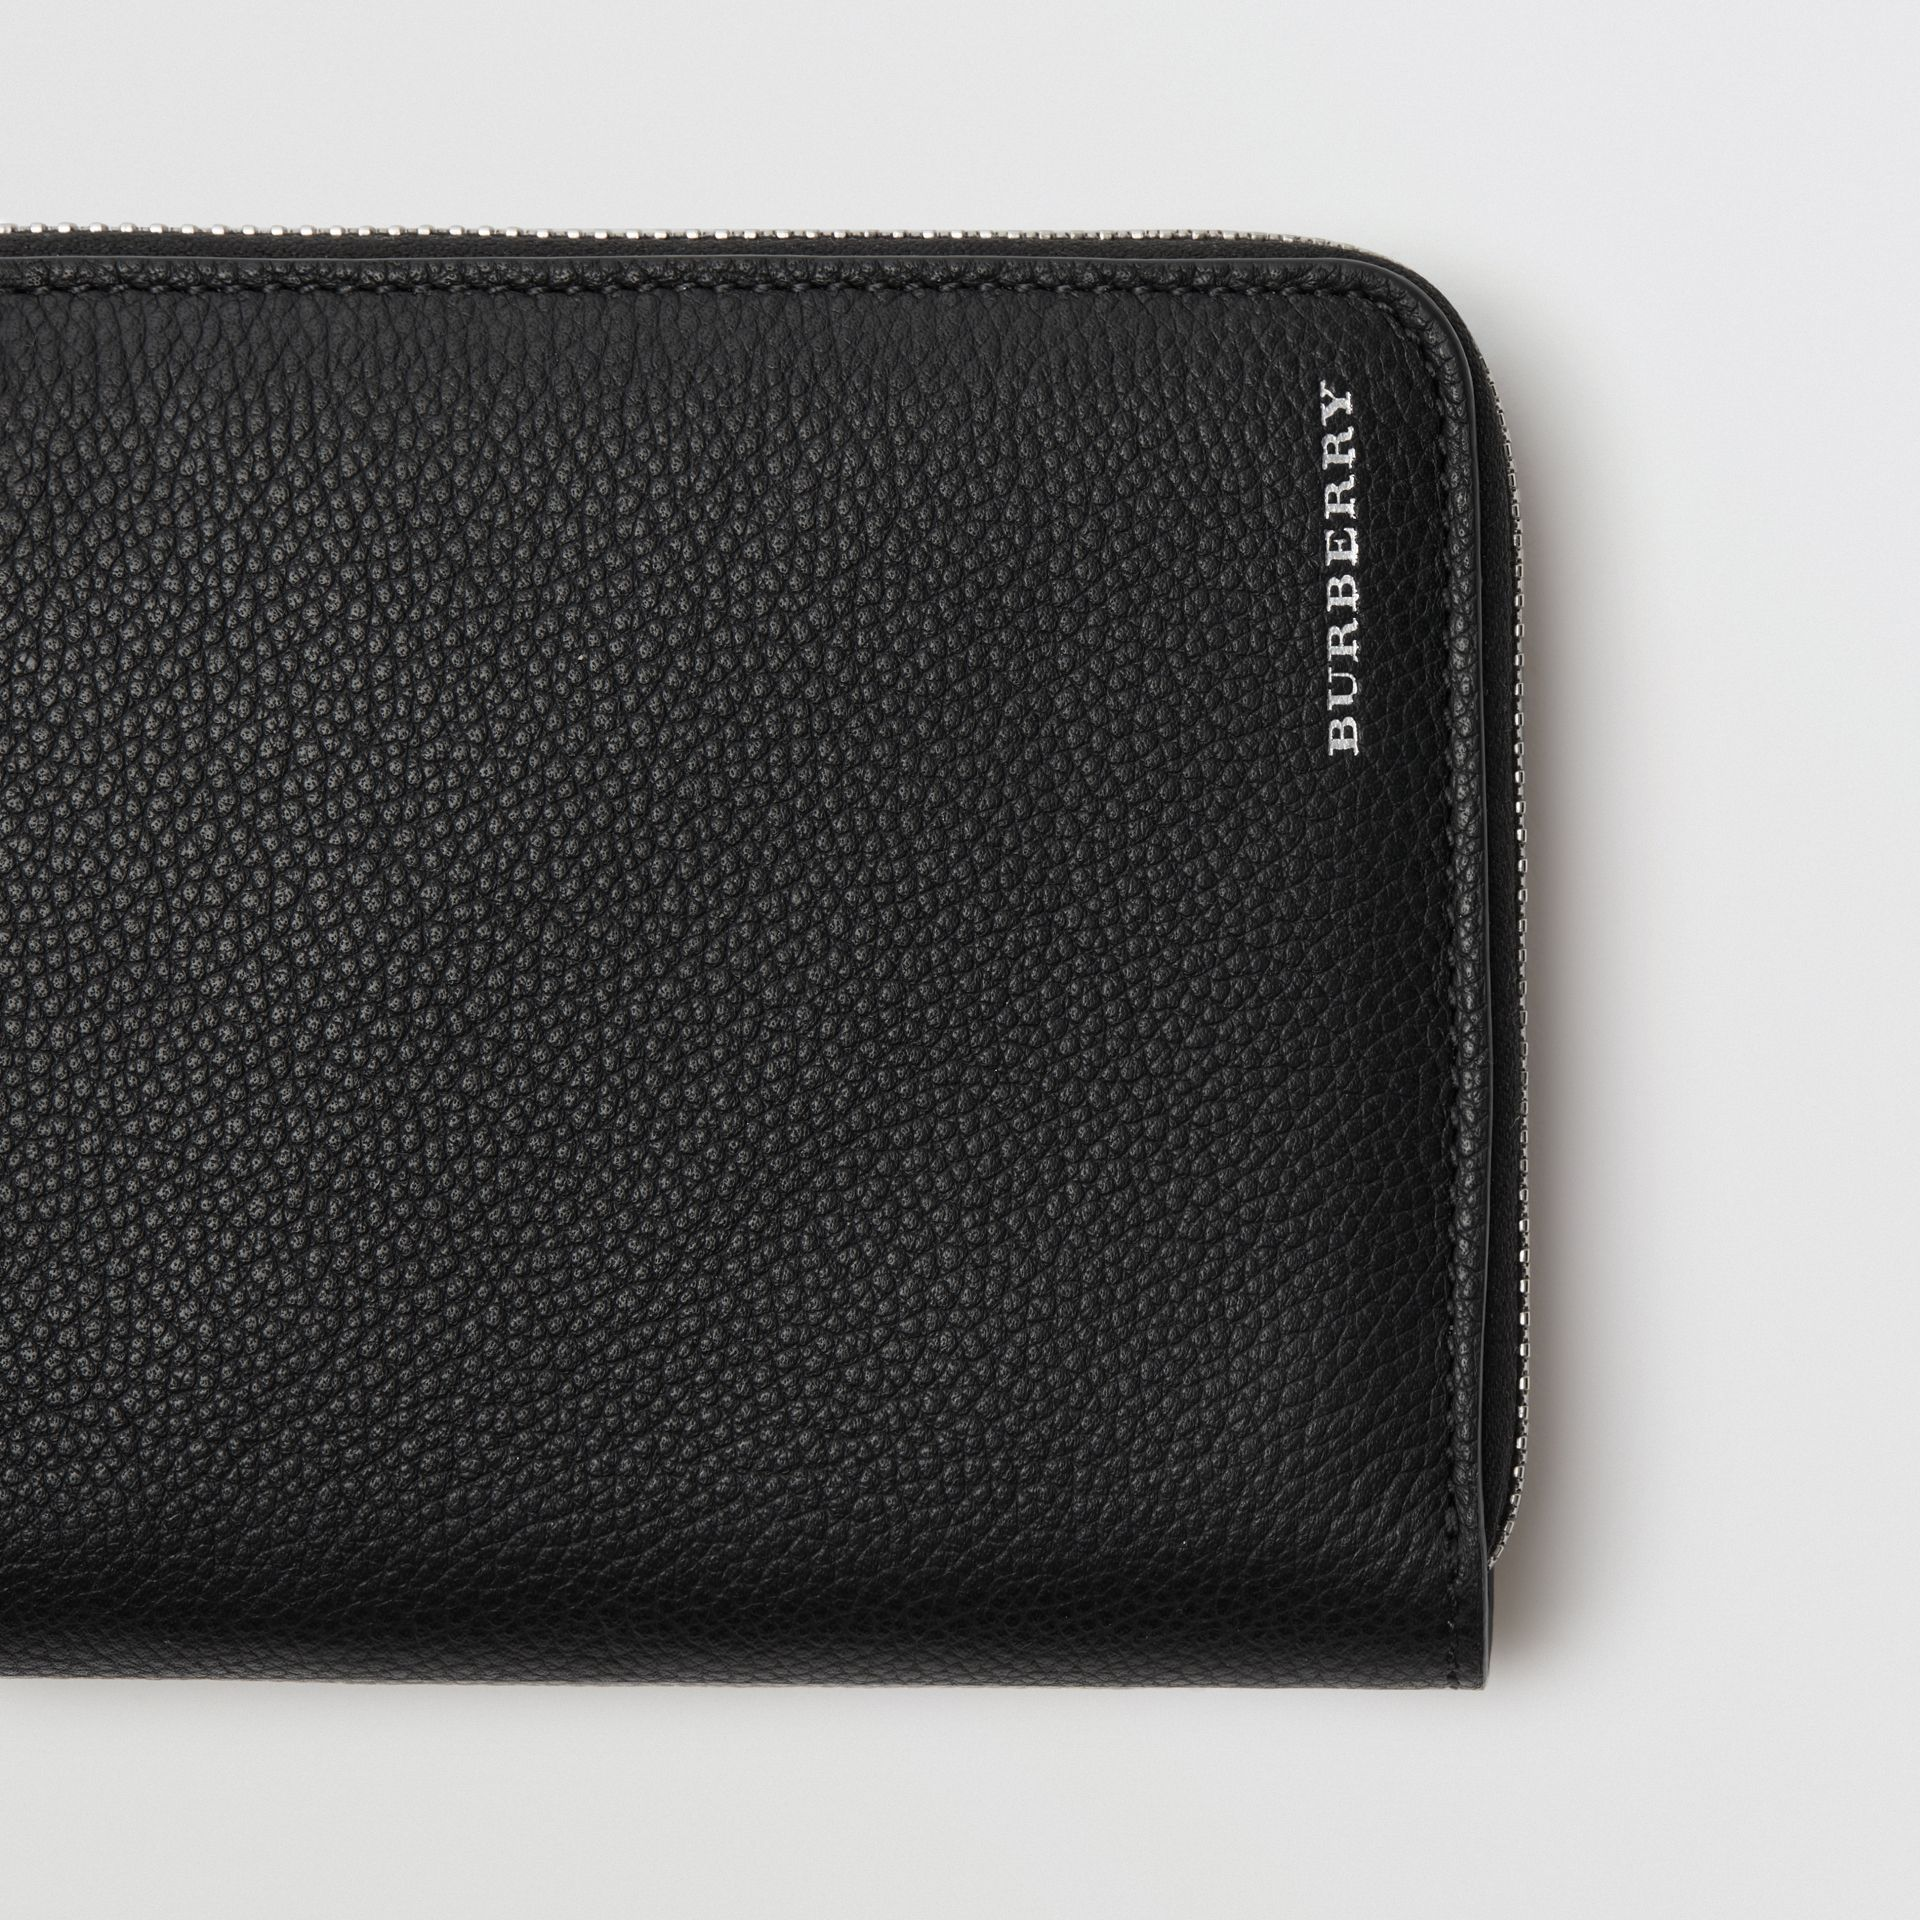 Grainy Leather Ziparound Wallet in Black - Men | Burberry United Kingdom - gallery image 1